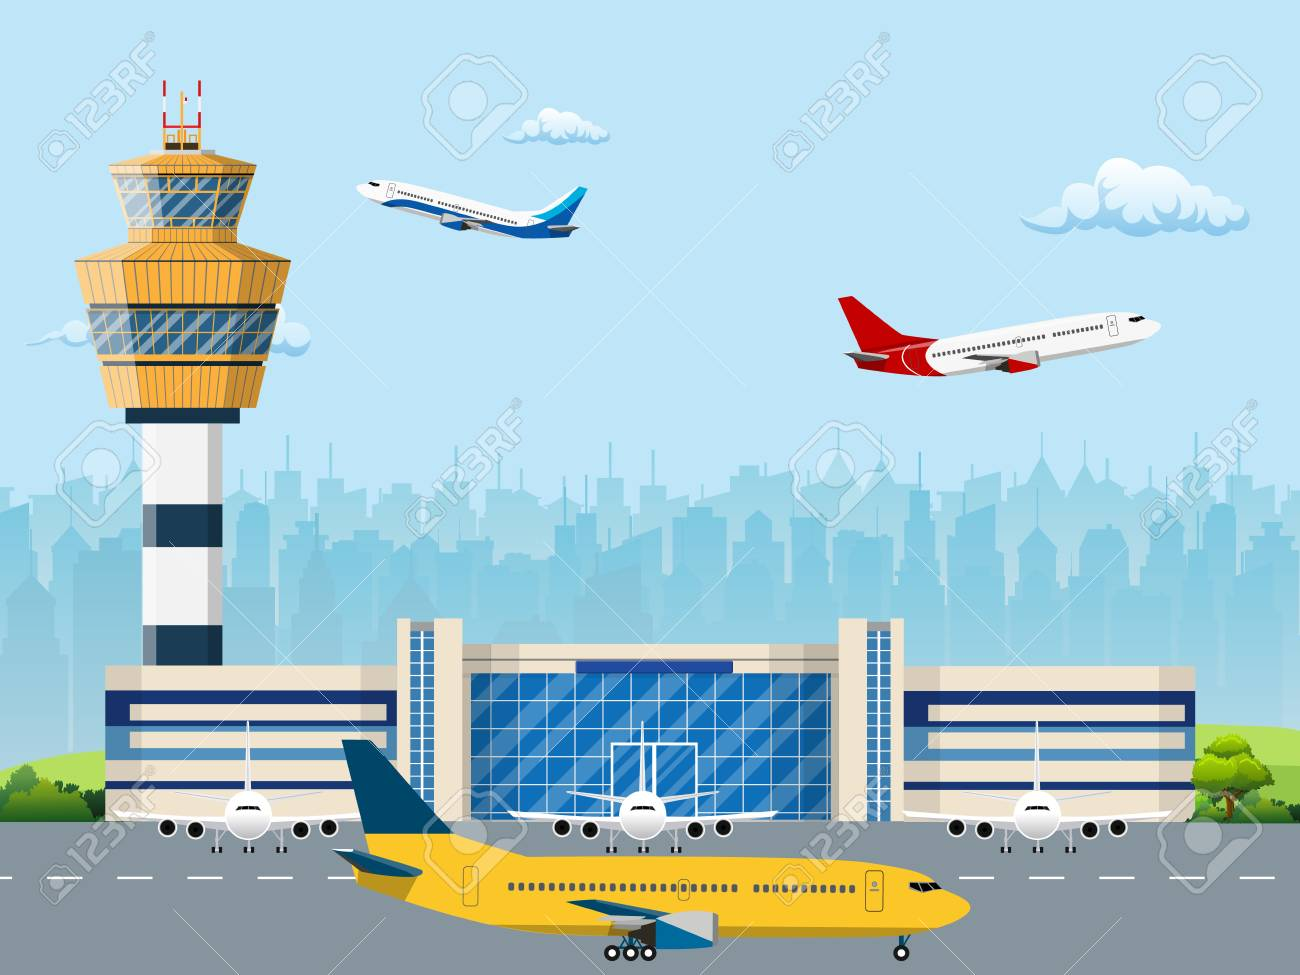 Modern building of airport terminal with control tower. Runway with planes. Vector illustration in flat style - 88120337